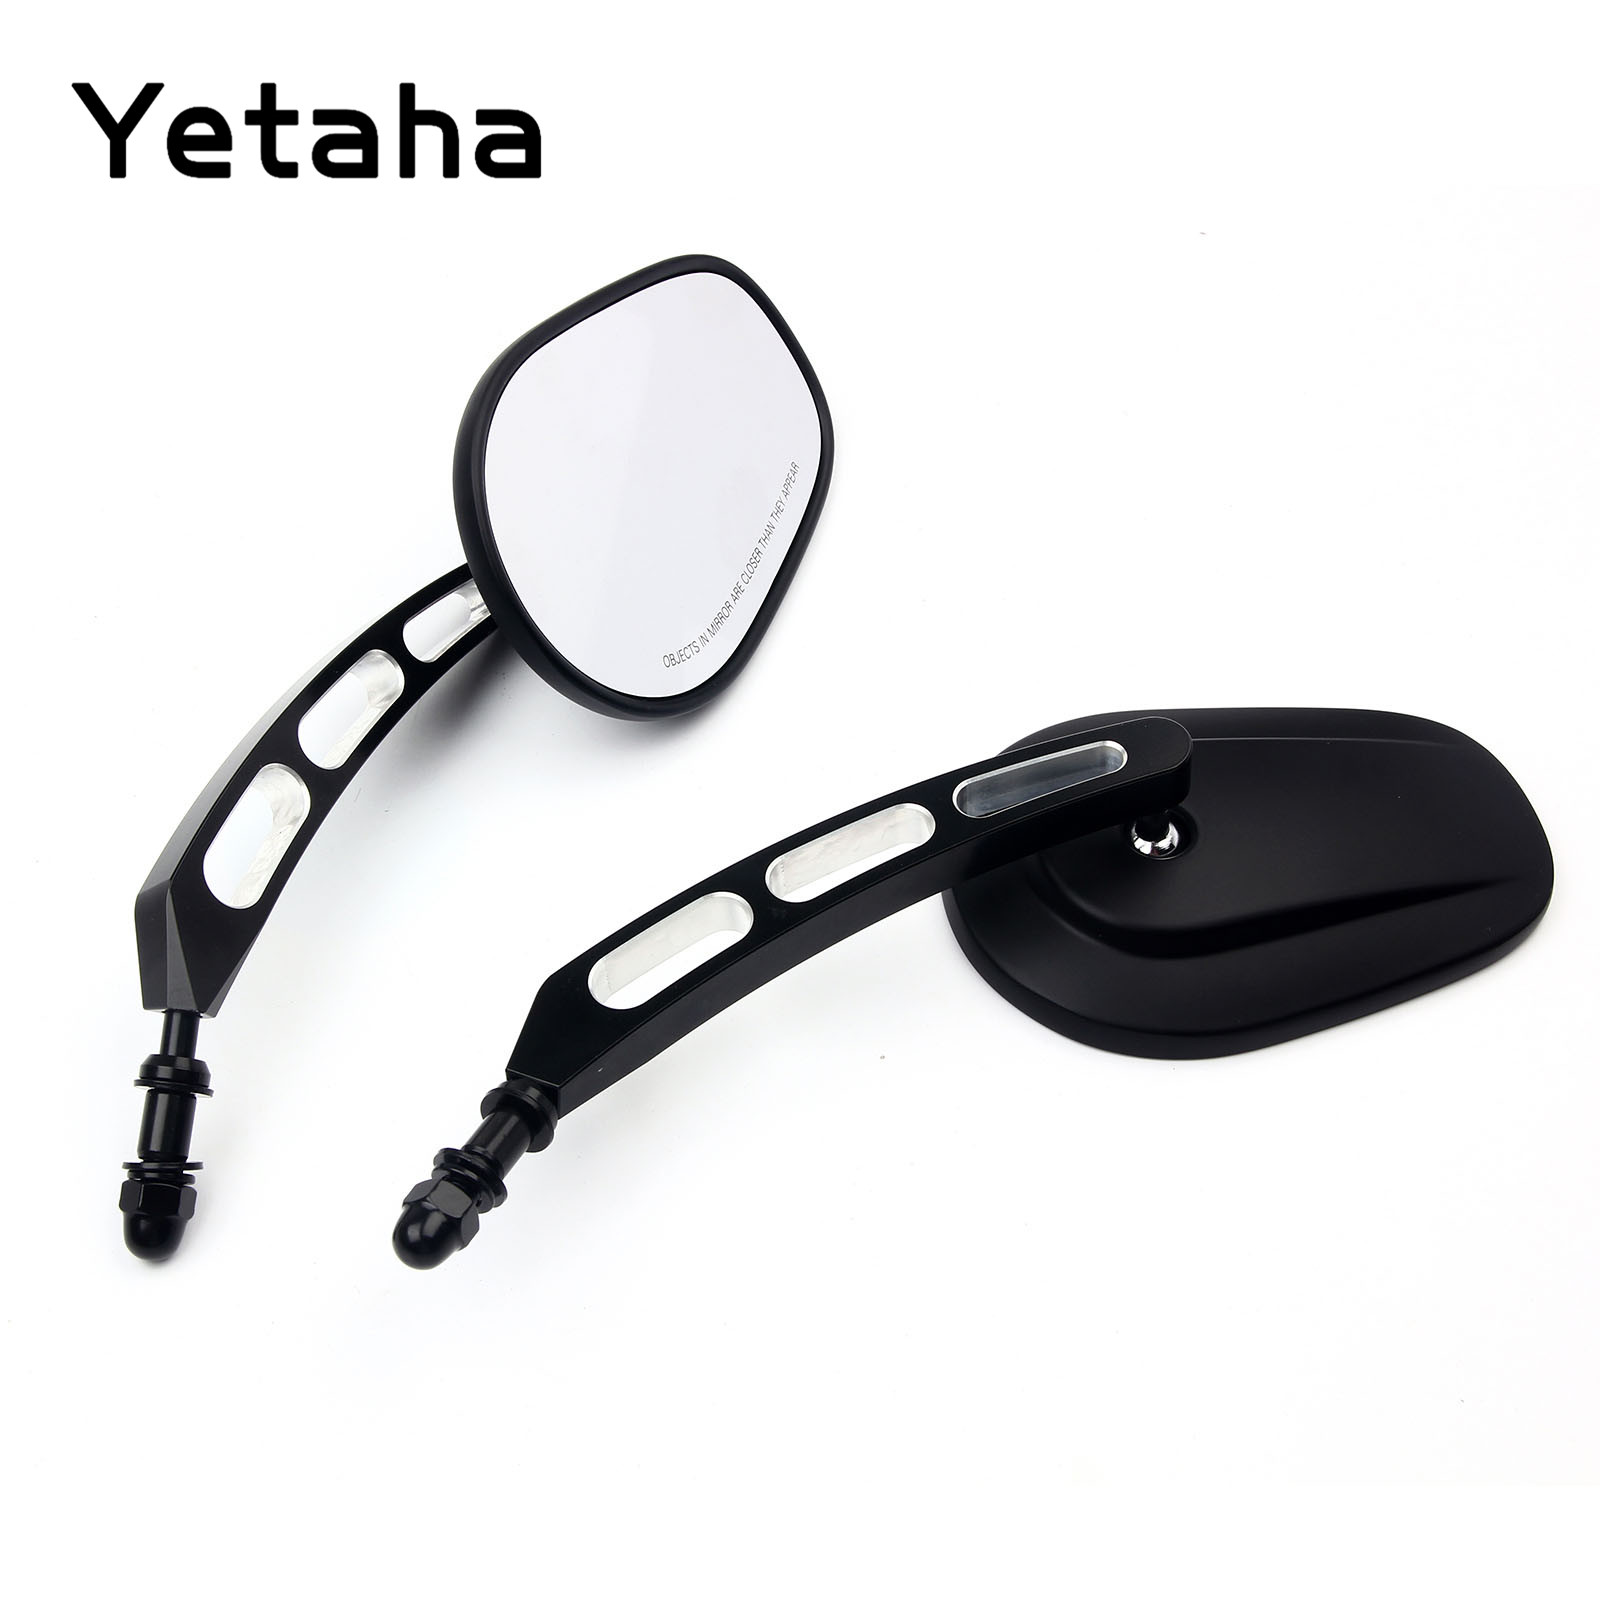 Yetaha 8mm 10mm Rear View Side Mirror For Sportster Softail Rocker Iron Fatboy Dyna Cross Road Black Chrome Motorcycle Mirrors-in Side Mirrors & Accessories from Automobiles & Motorcycles